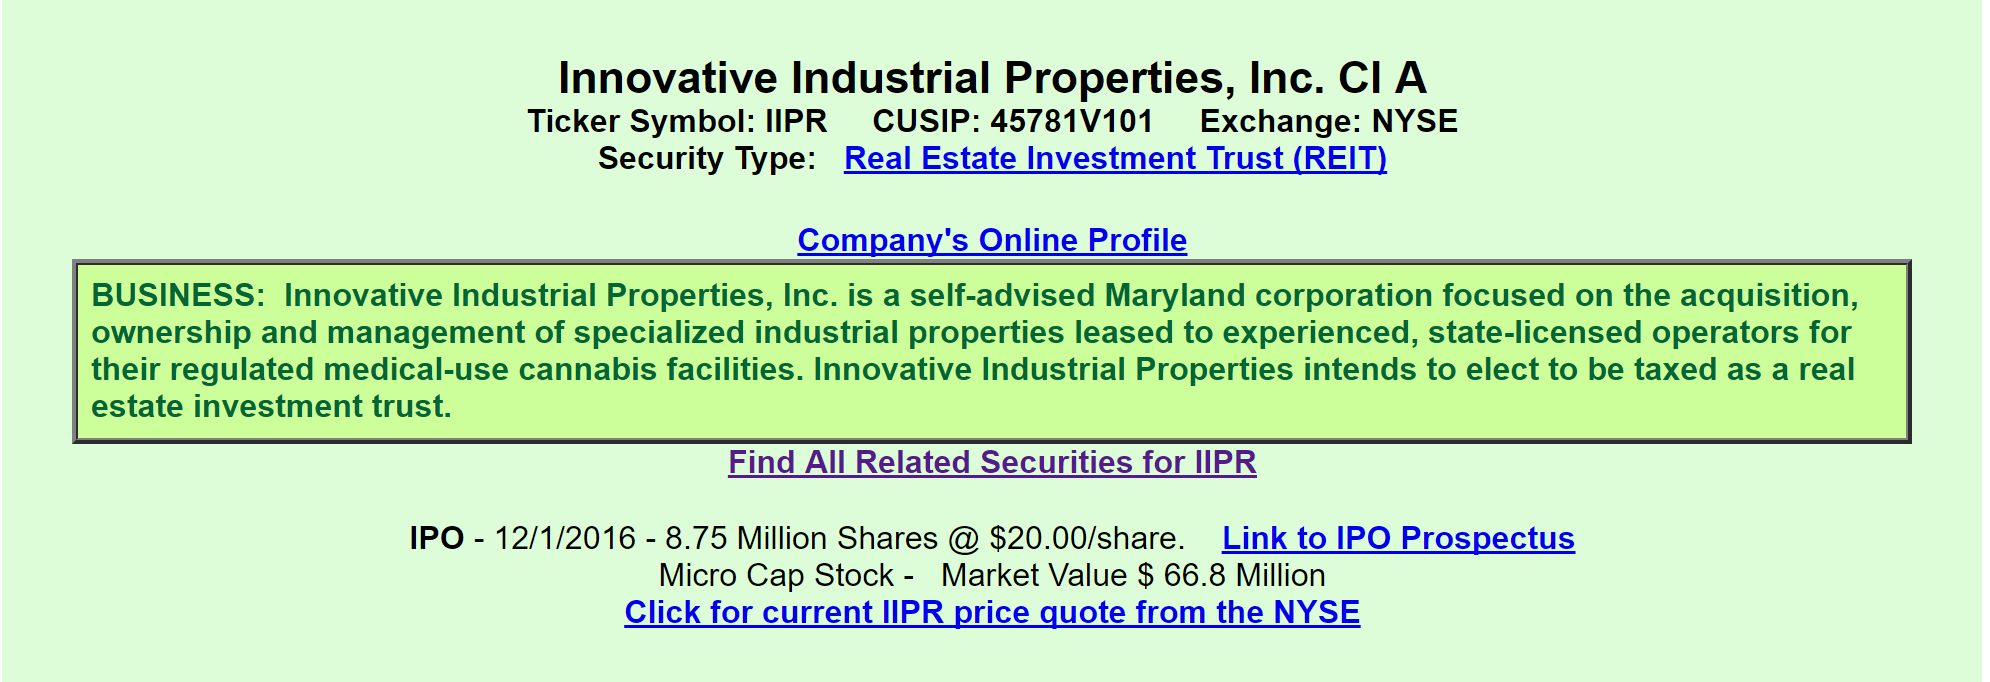 Let s look at it from an investment prospective if a company had - Here We Learn That Iipr Is A Reit Focused On The Acquisition Ownership And Management Of Industrial Properties Leased To State Licensed Operators Involved